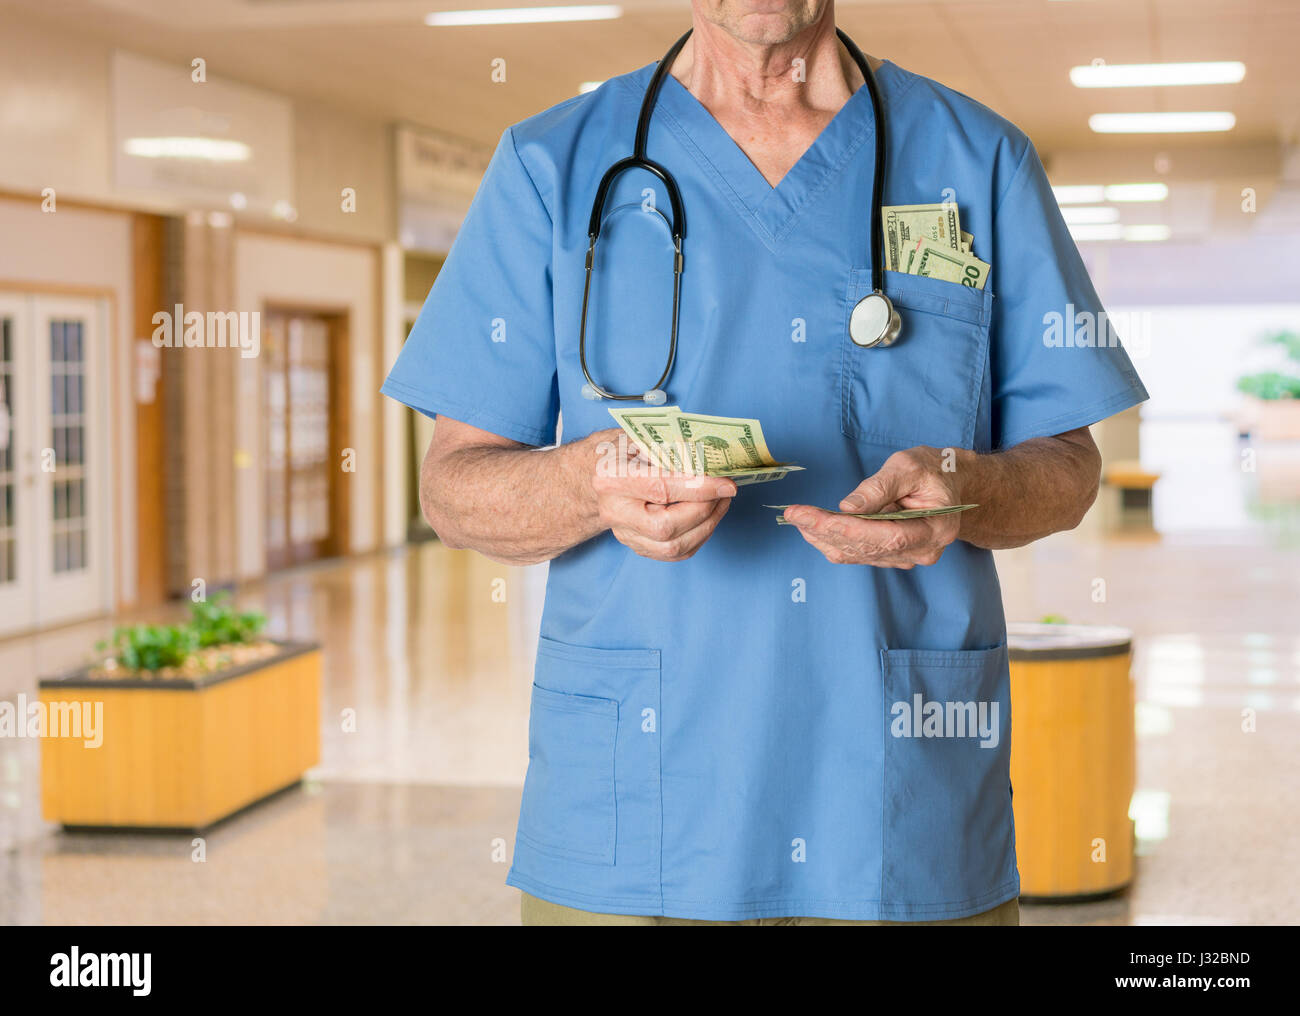 Doctor in scrubs in hospital counting money  - healthcare, health insurance, medical bills concept - Stock Image